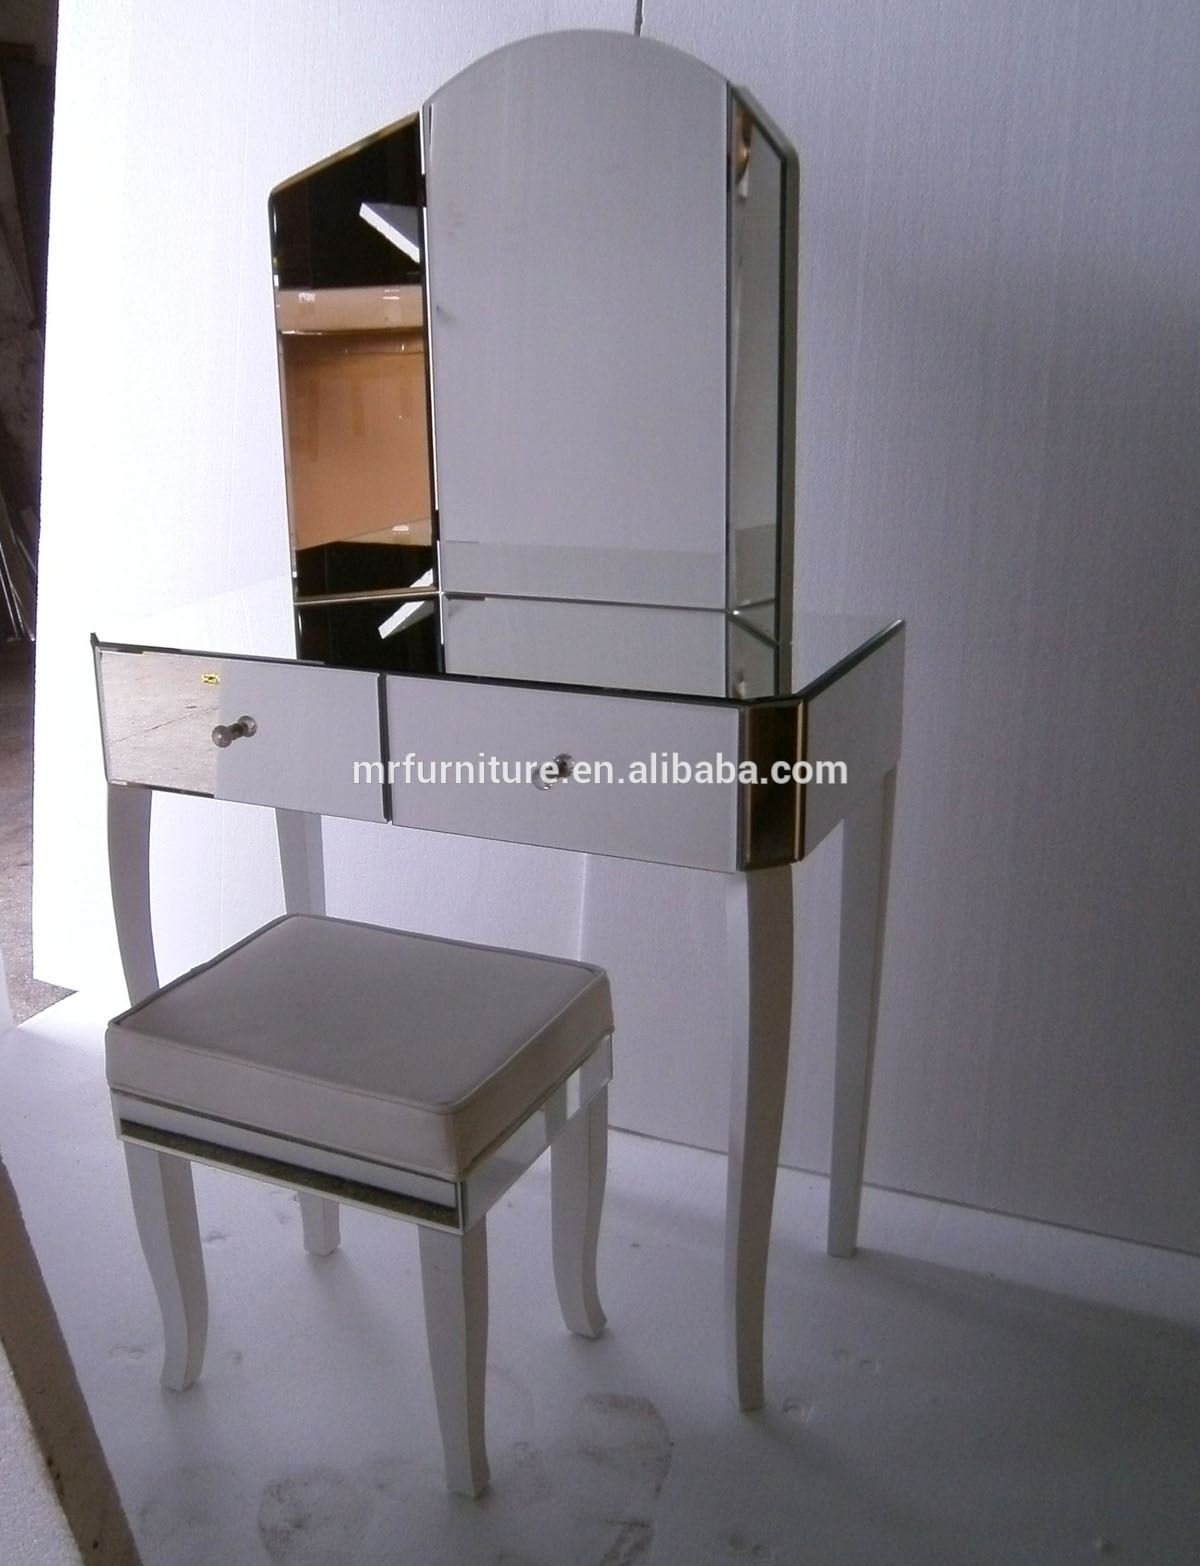 White Legs Venetian Mirrored Dressing Table With Folding Mirror Inside Venetian Mirror Table (Image 15 of 15)